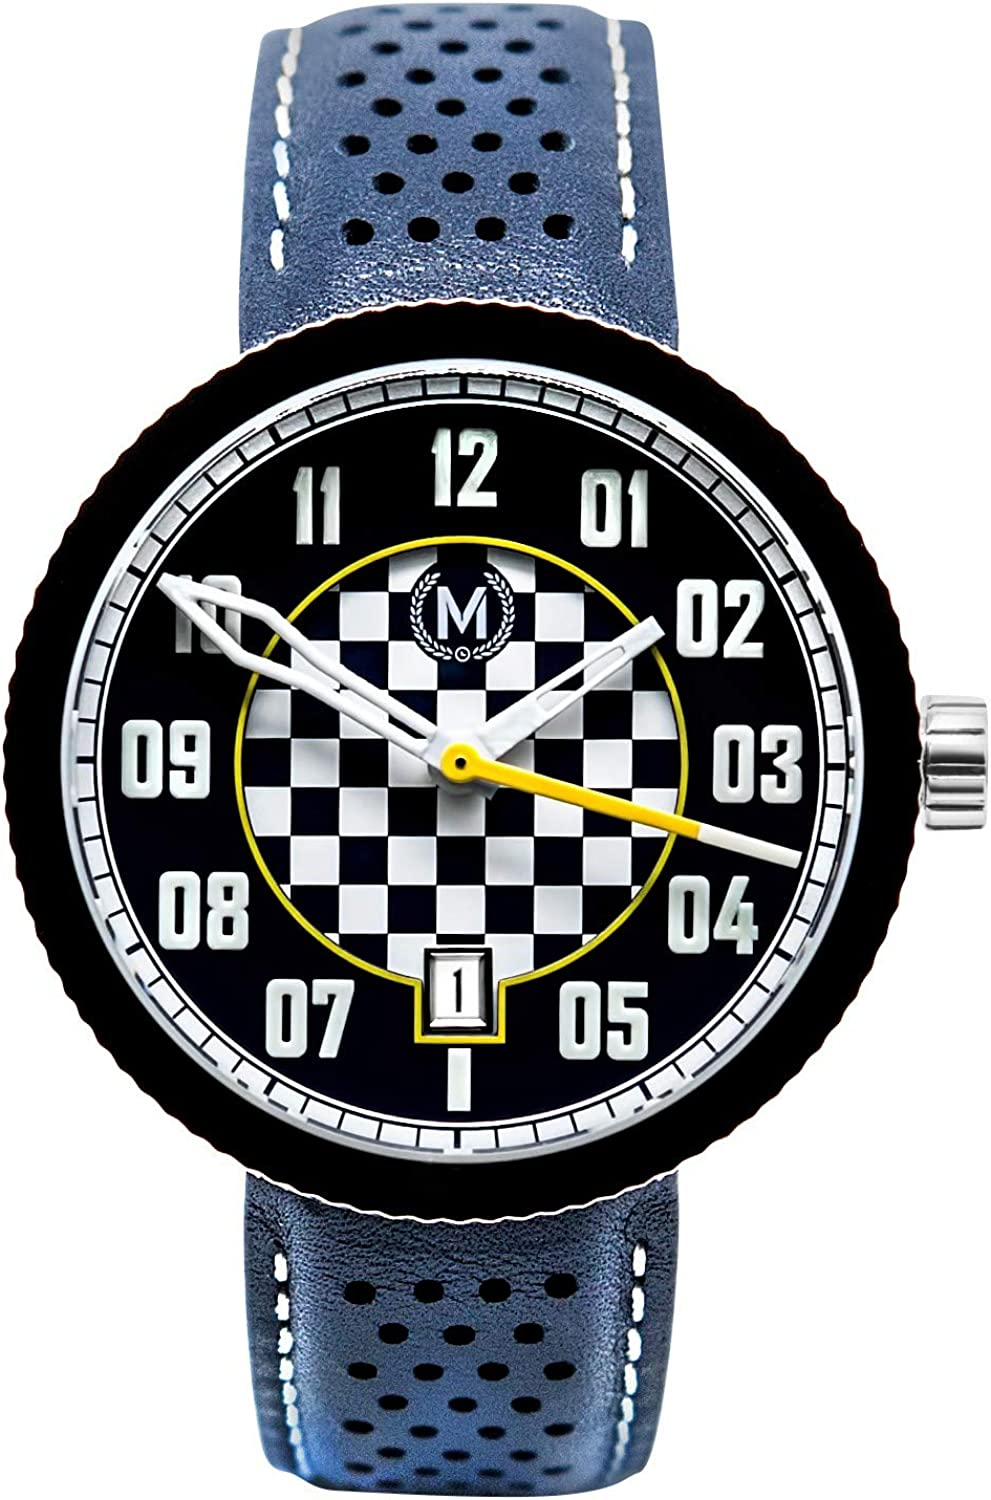 Marchand Legacy Automatic Racing Watch | Racing Watch for Men | Unique Checkered Racing Dial | British Designed | Premium Automatic Watch | Blue Leather Watch Band | Watches for Men|24 Month Warranty